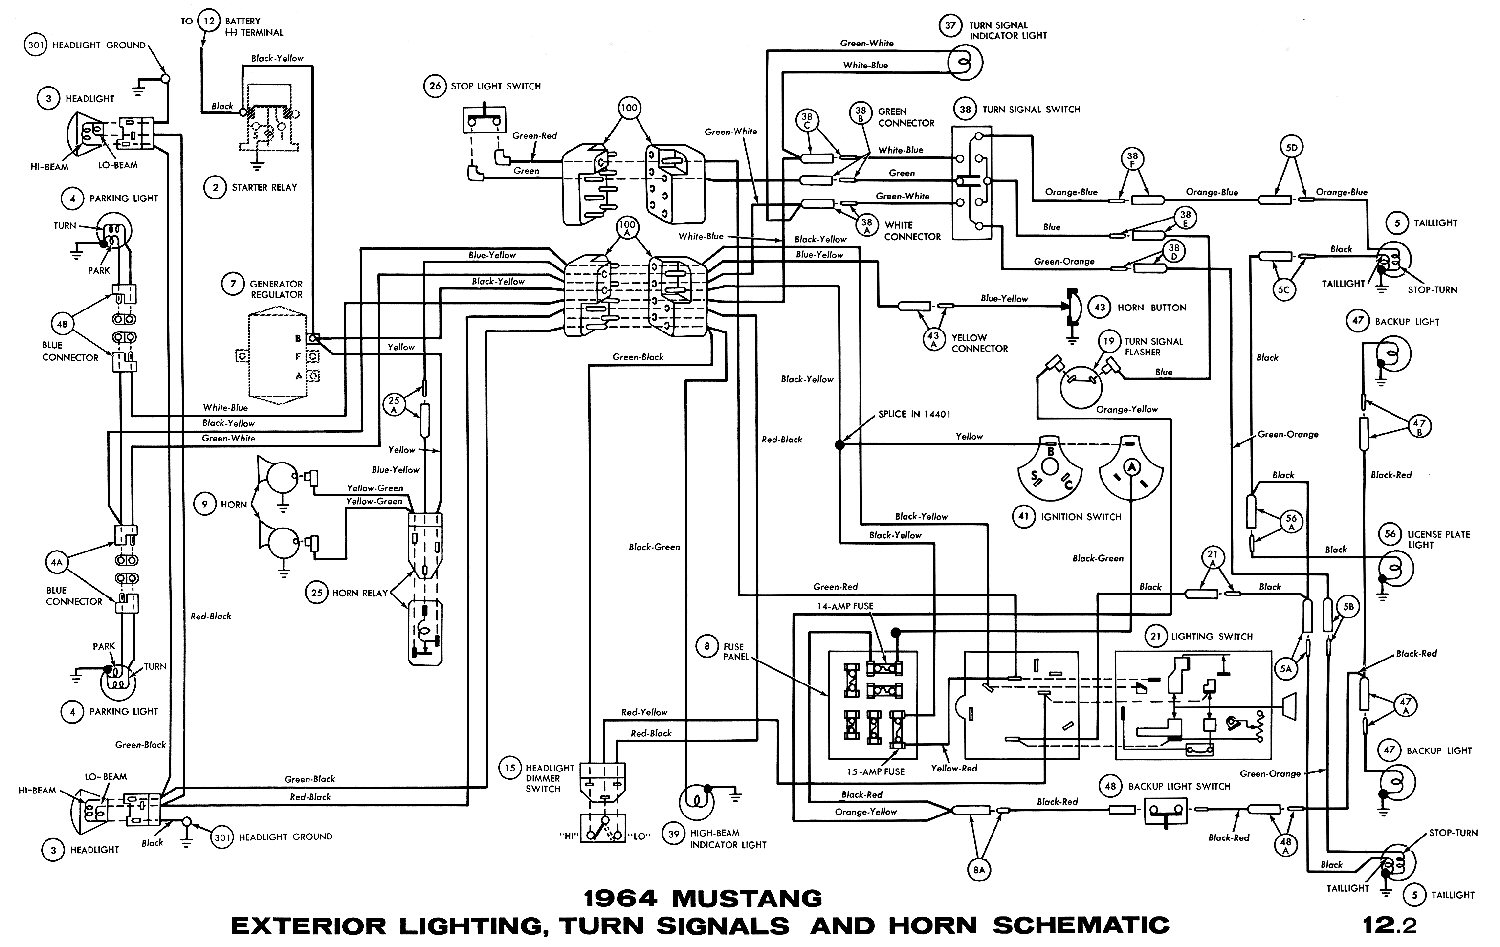 1964i 1964 mustang wiring diagrams average joe restoration ford mustang wiring diagram at cos-gaming.co